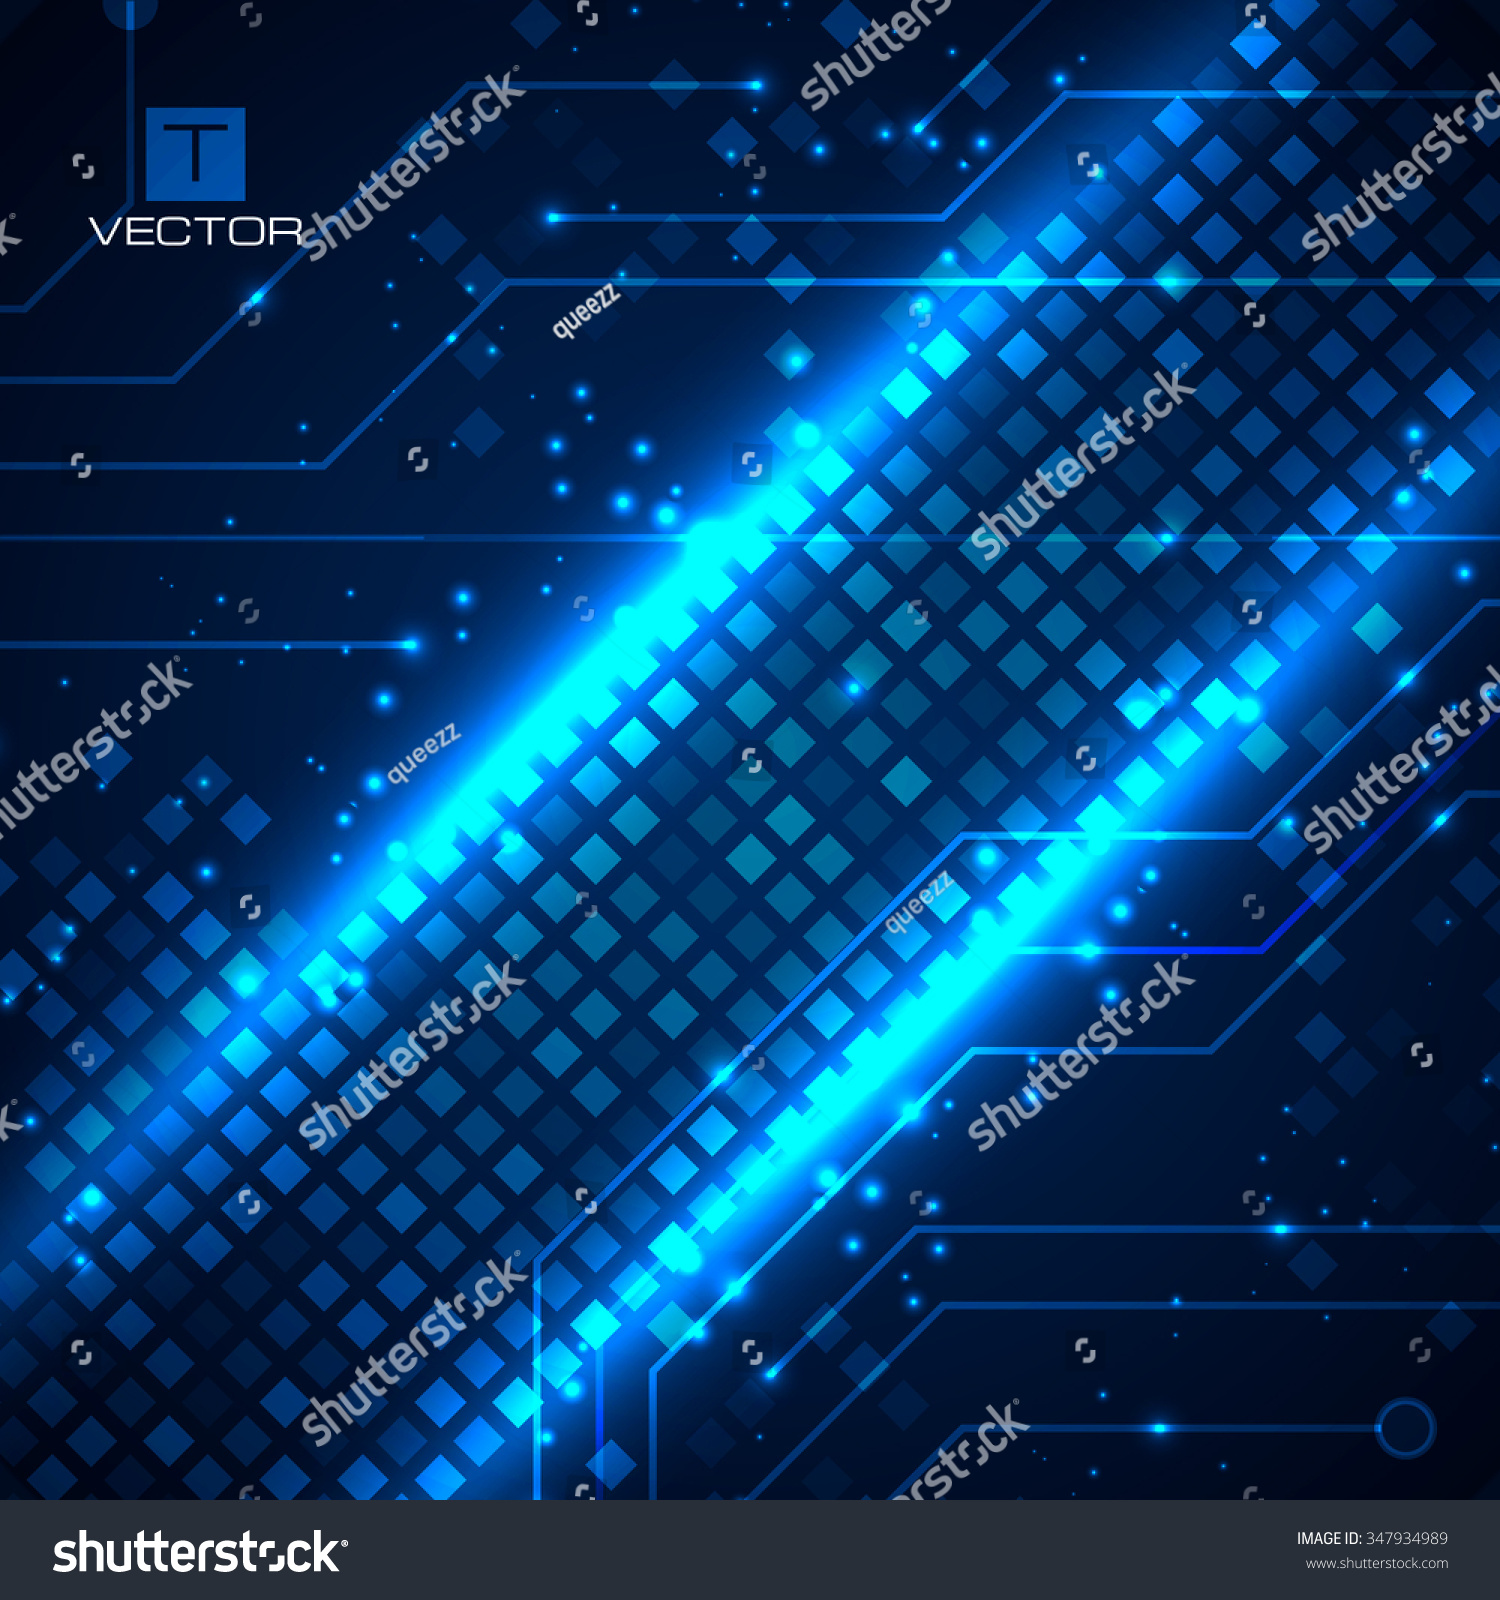 Technology Background With Circuit Boards Elements Vector Board Place For Text Id 347934989